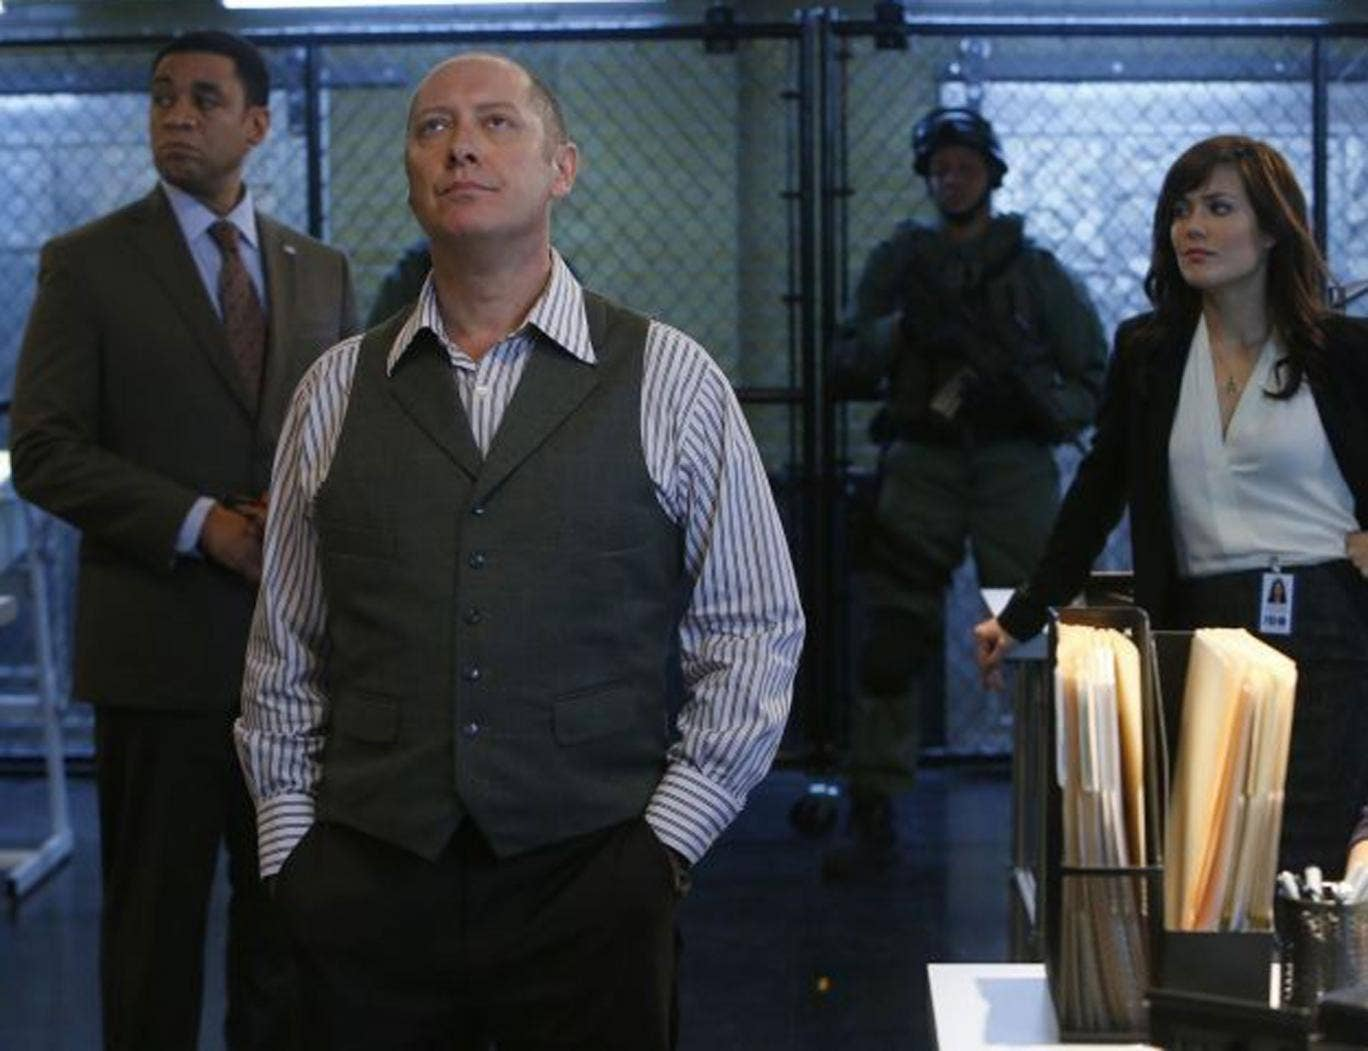 More glossy than gritty: James Spader and co in The Blacklist